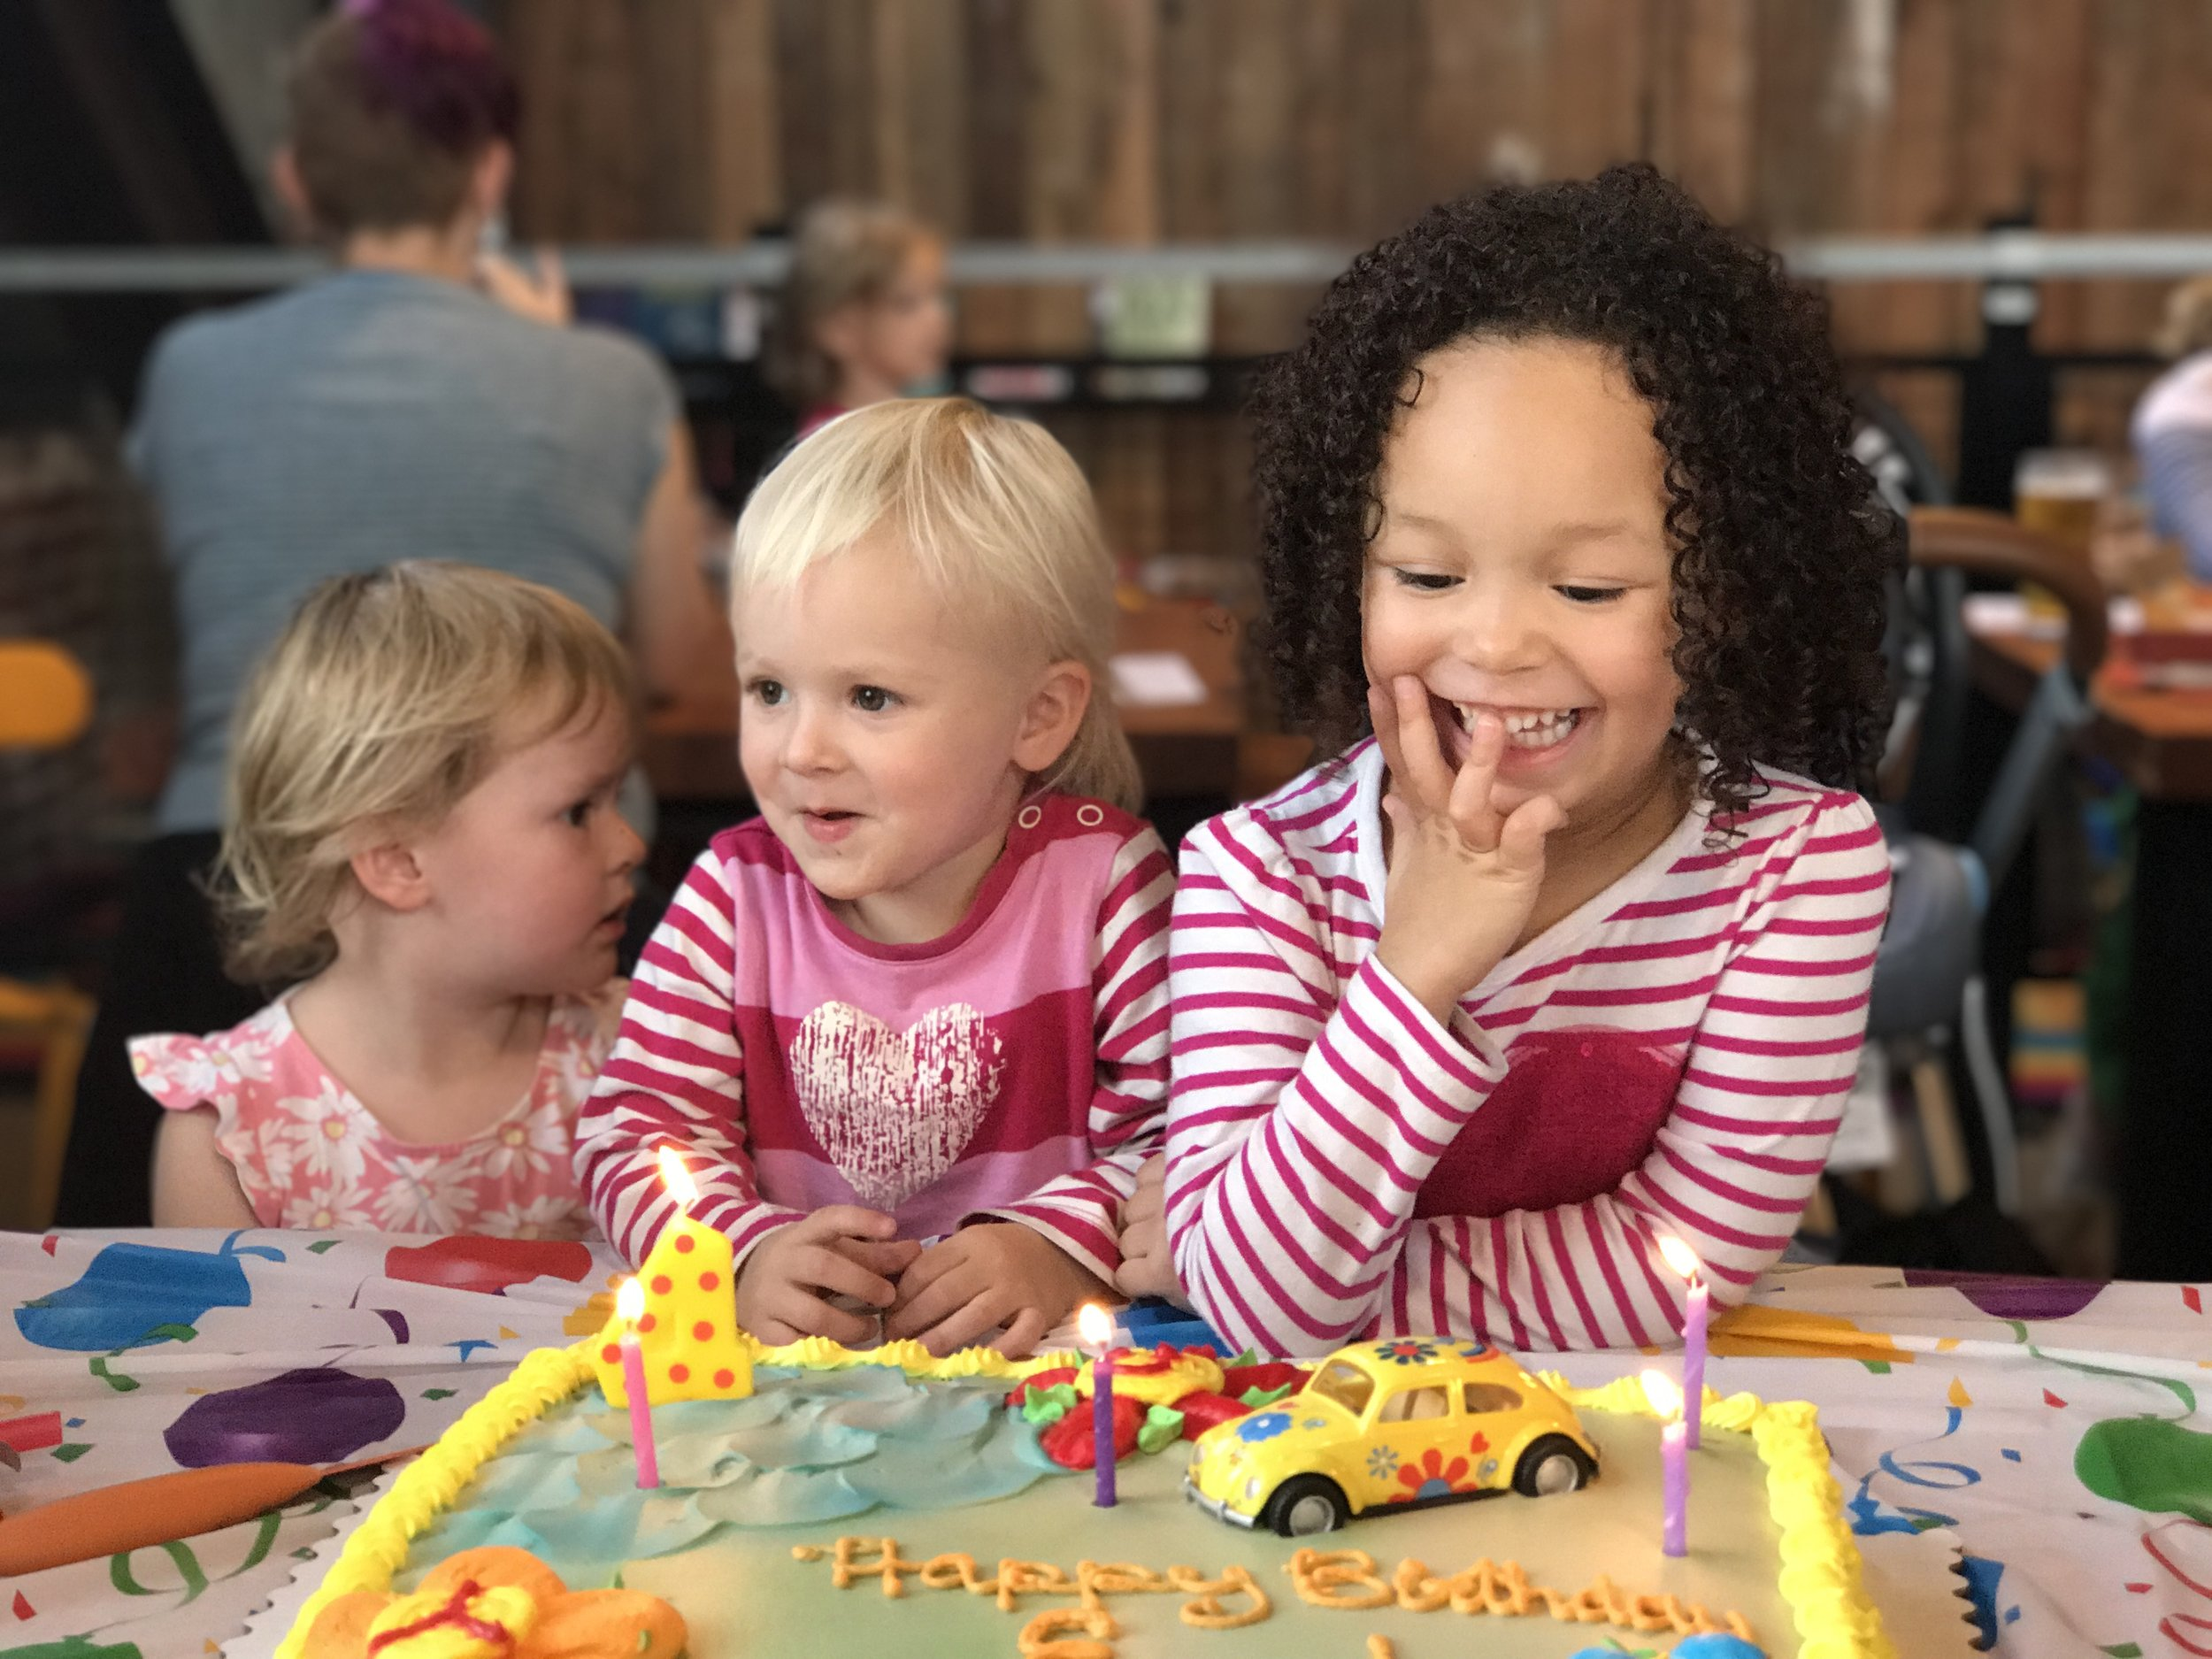 Kids Party Inquiry - We love kids and have a dedicated play area.  Optimism is a good place for some kids parties, but not all.